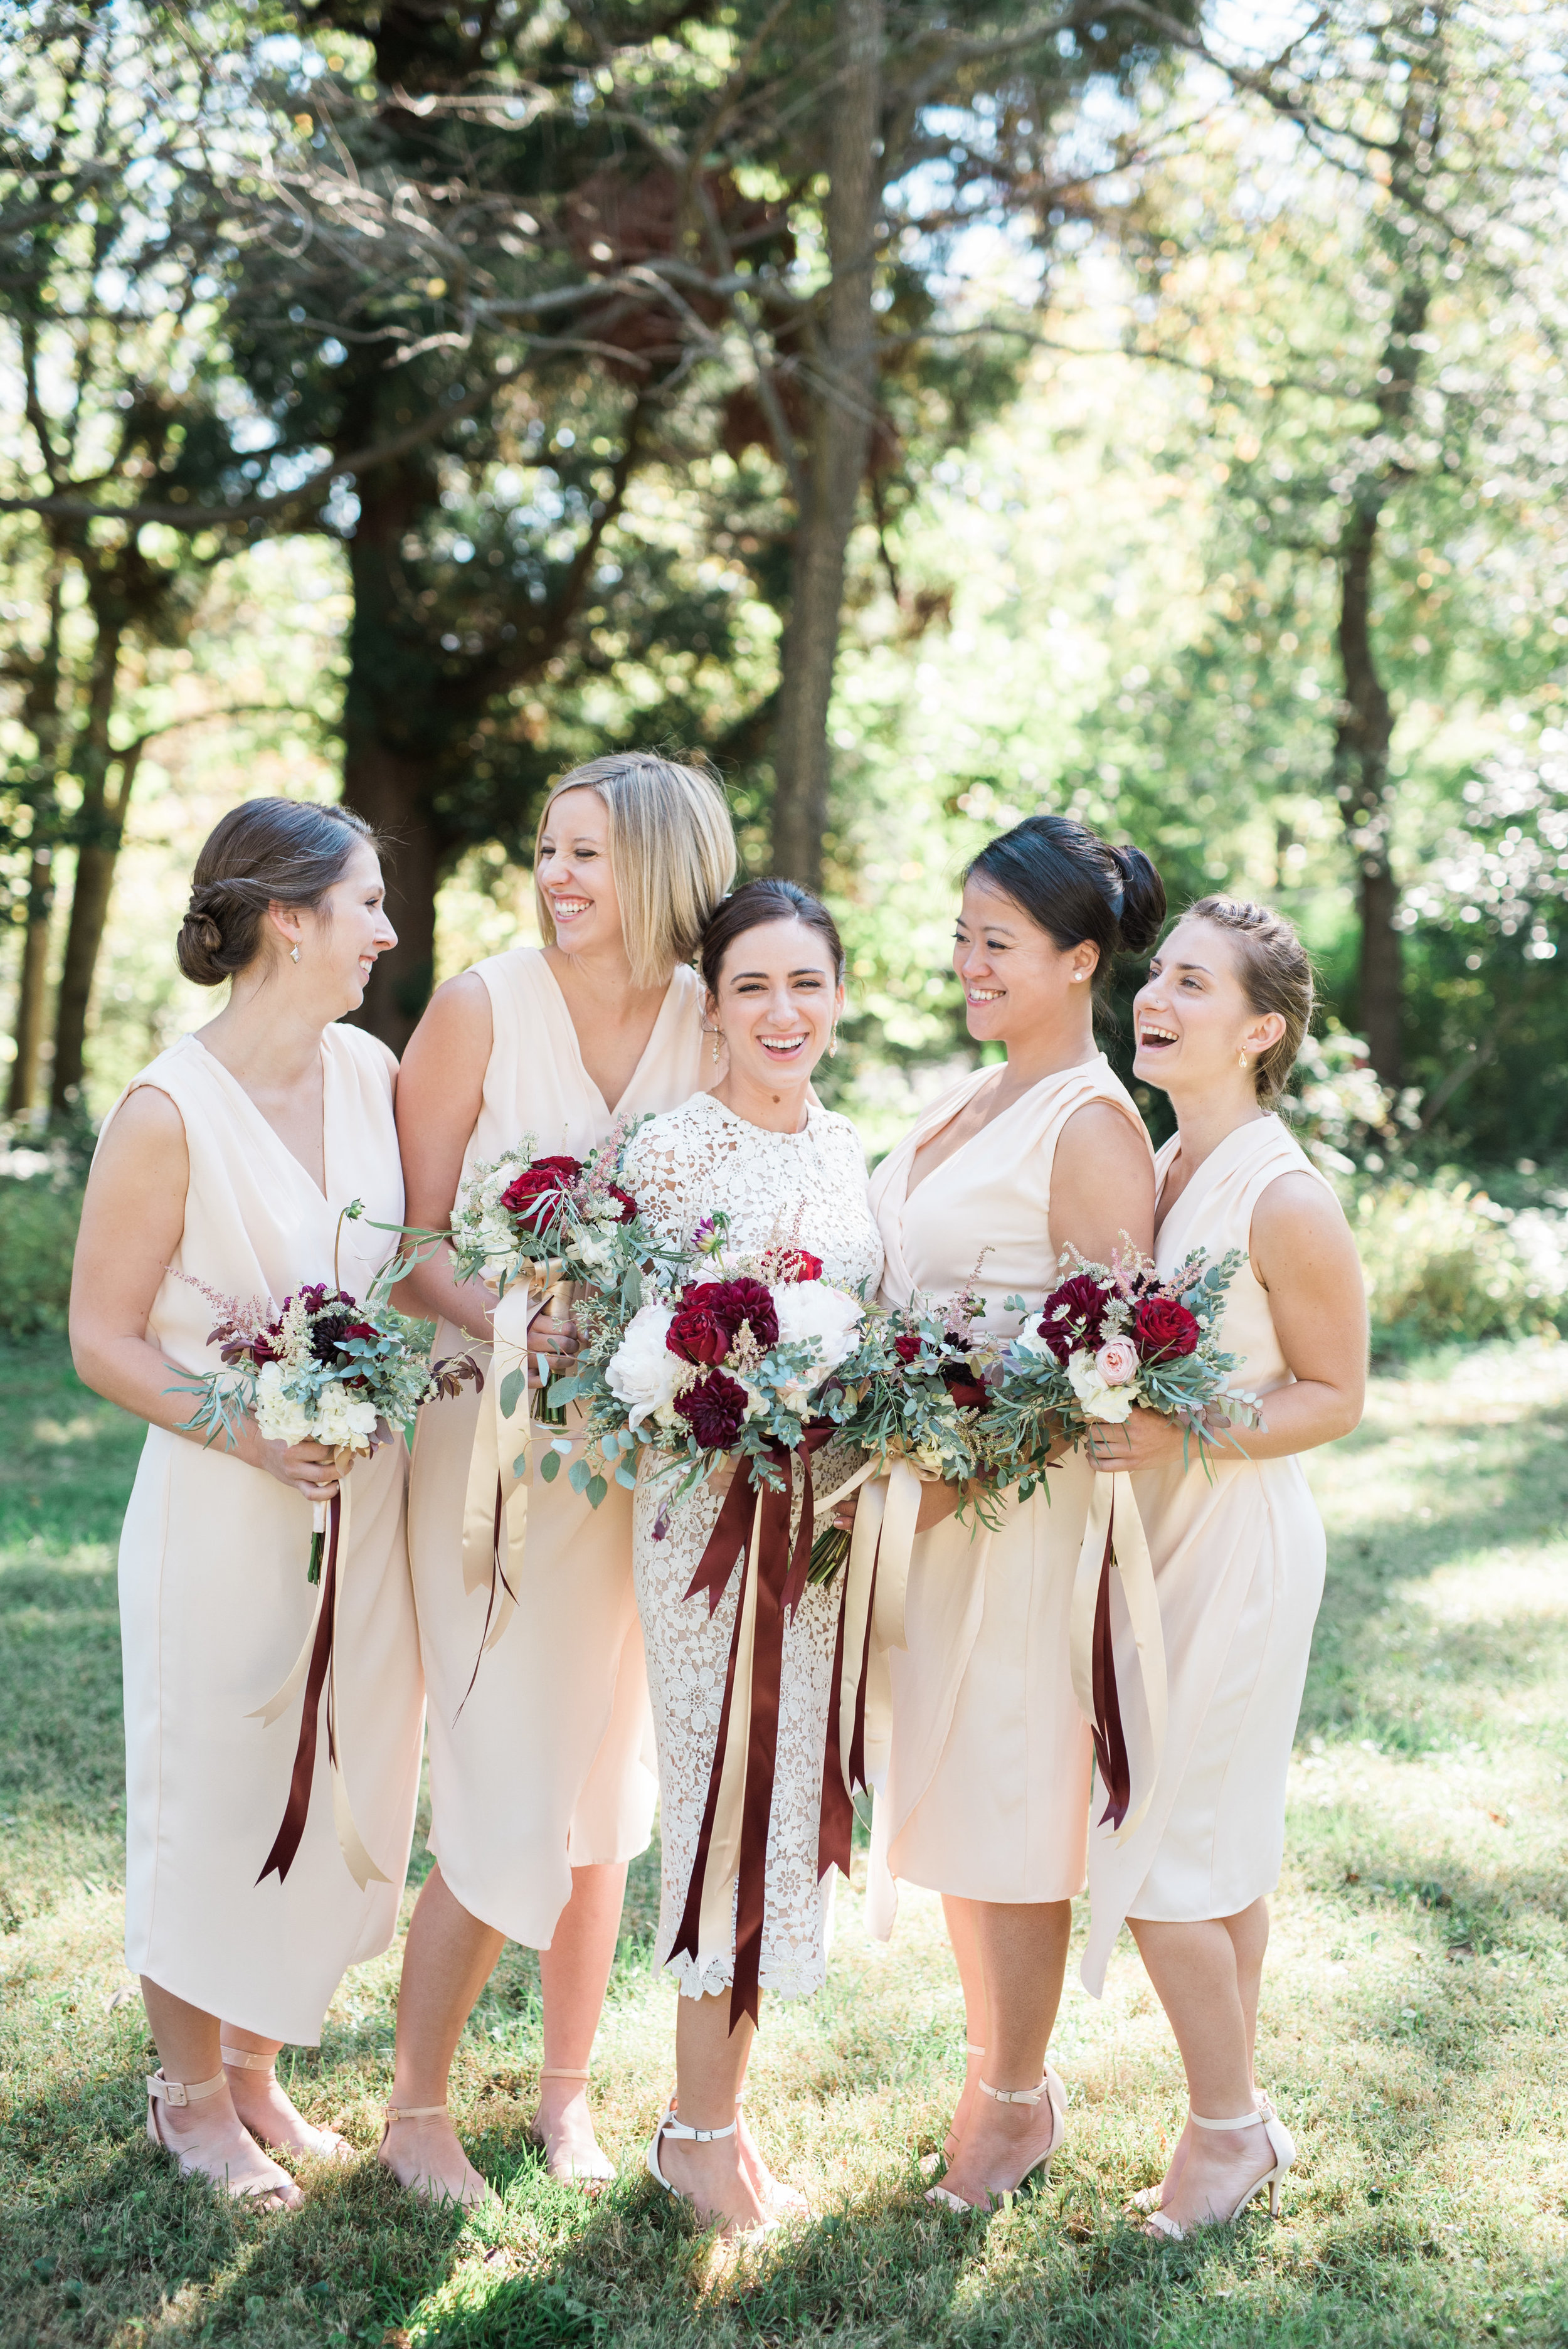 Rustic Outdoor Fall Arlington Virginia Hendry House Wedding with East Made Event Company Baltimore Maryland Washington DC Wedding Planner and ksant photography Richmond Virginia Wedding Photographer 10.jpg